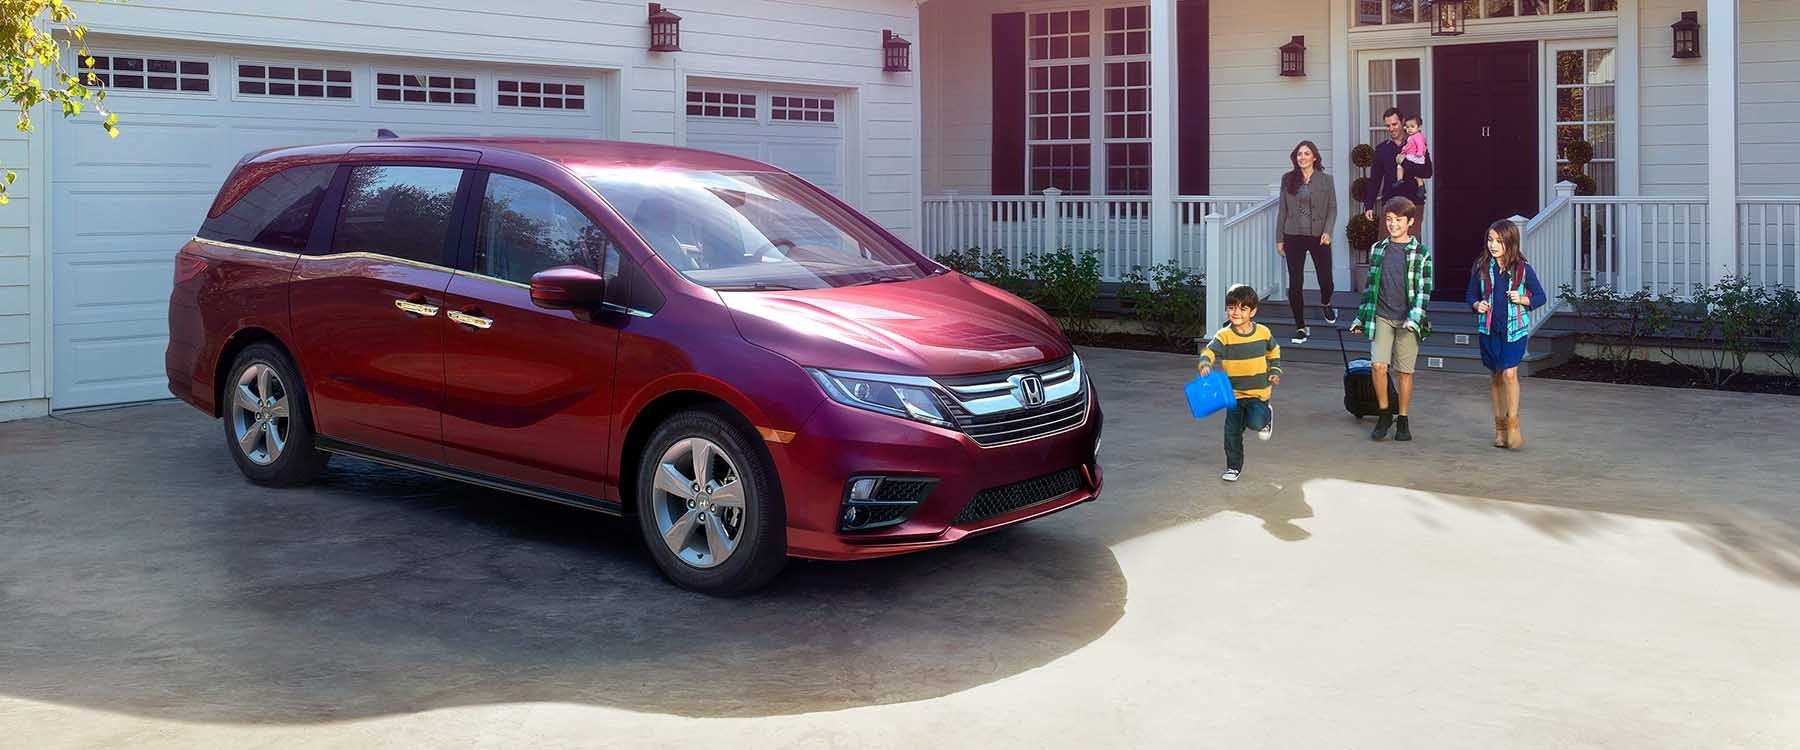 2019 Honda Odyssey Parked in Driveway of Home